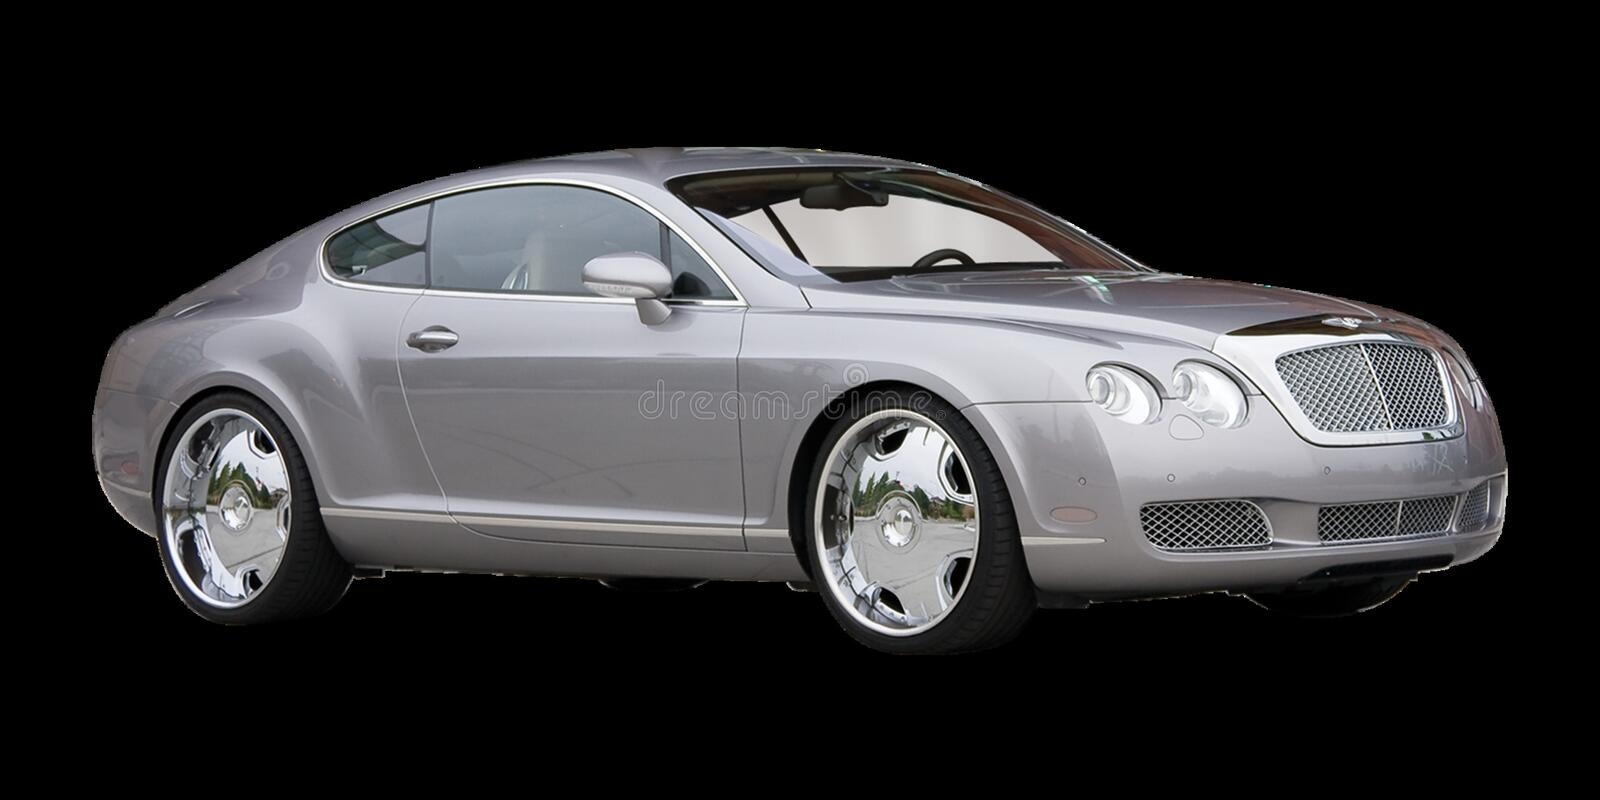 Bil Bentley Continental Gt, motorfordon, landmedel royaltyfria bilder